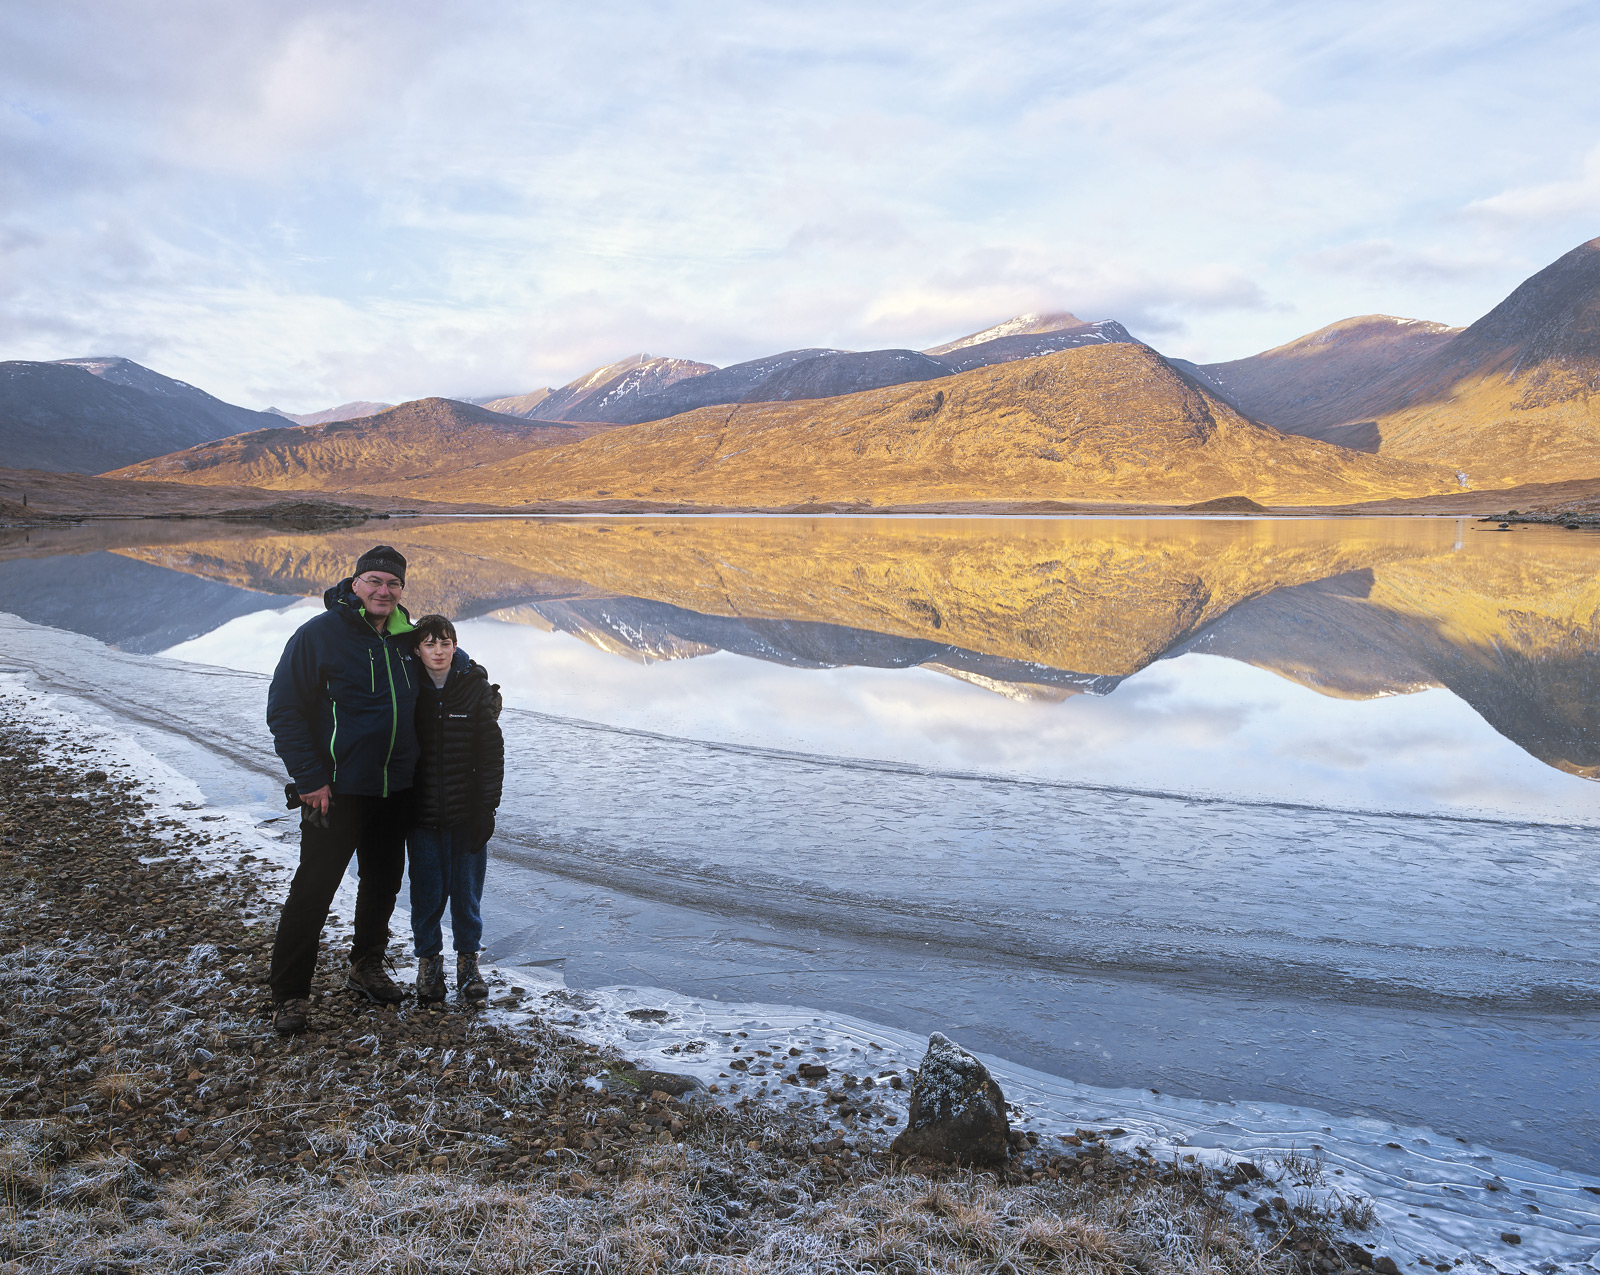 A stunning winter reflection at our wild campsite beside remote Loch Dochard. I went there with my young son Ben...